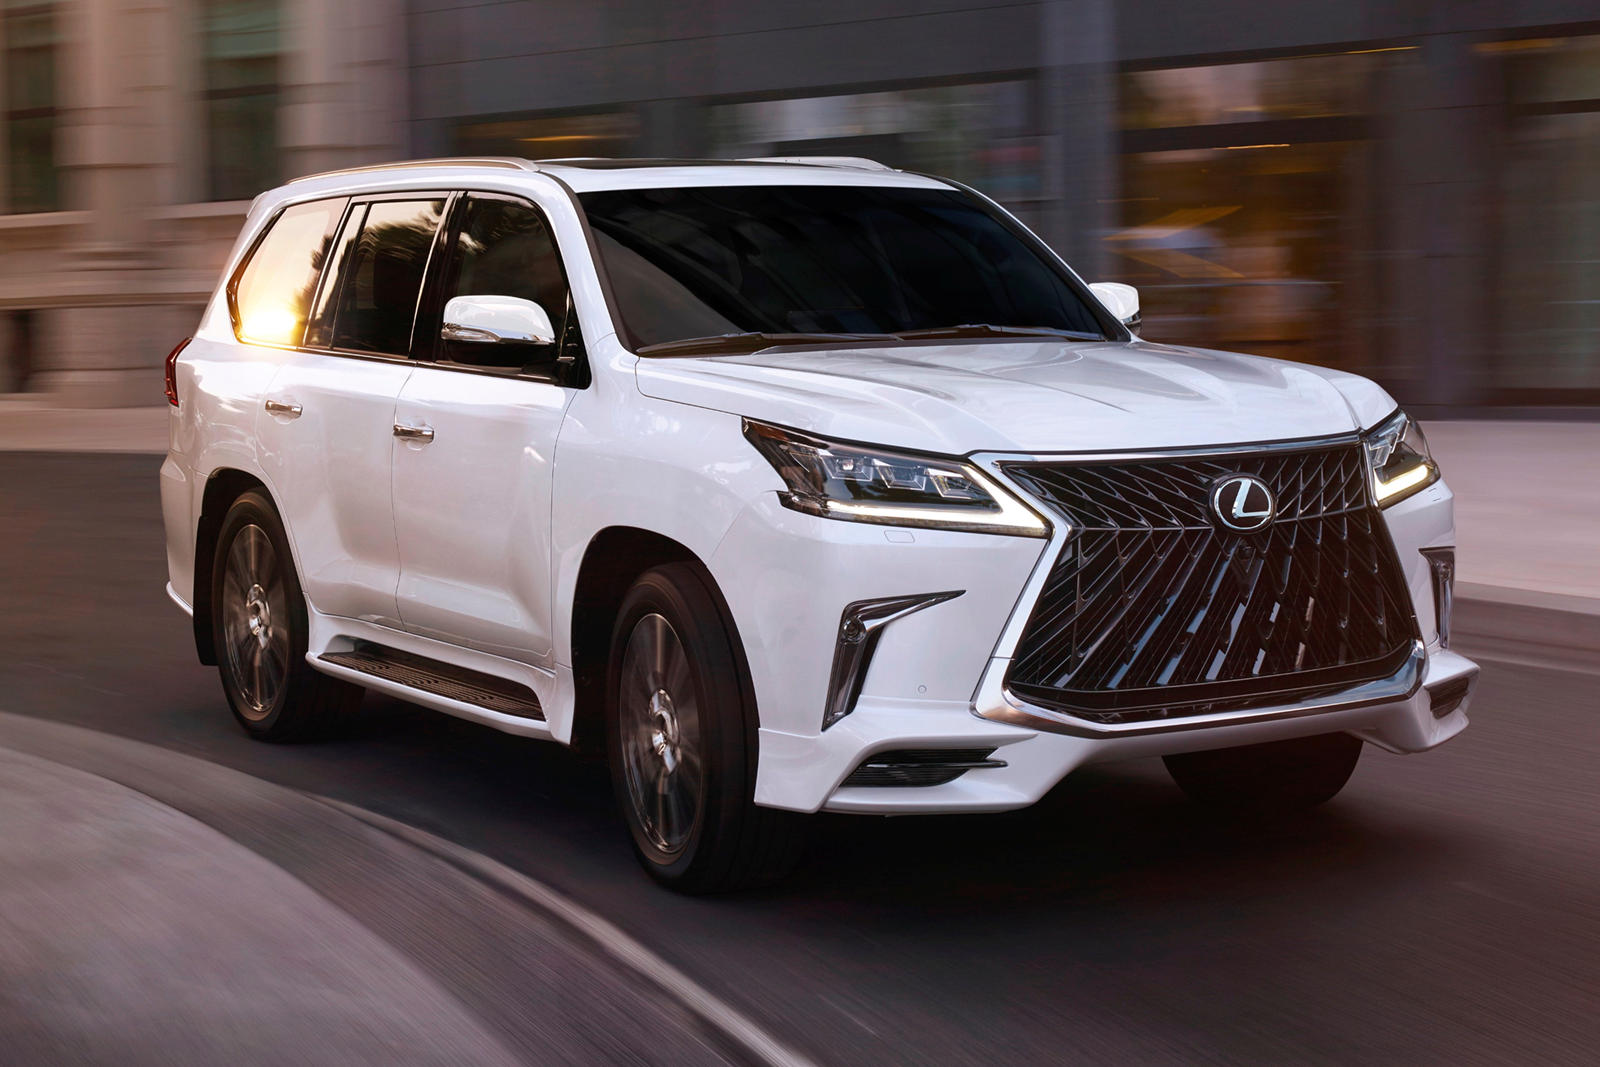 2020 Toyota Land Cruiser Facelift, Redesign, Changes, And Interior >> 2020 Lexus Lx 570 Makes Toyota Land Cruiser Look Bland Carbuzz